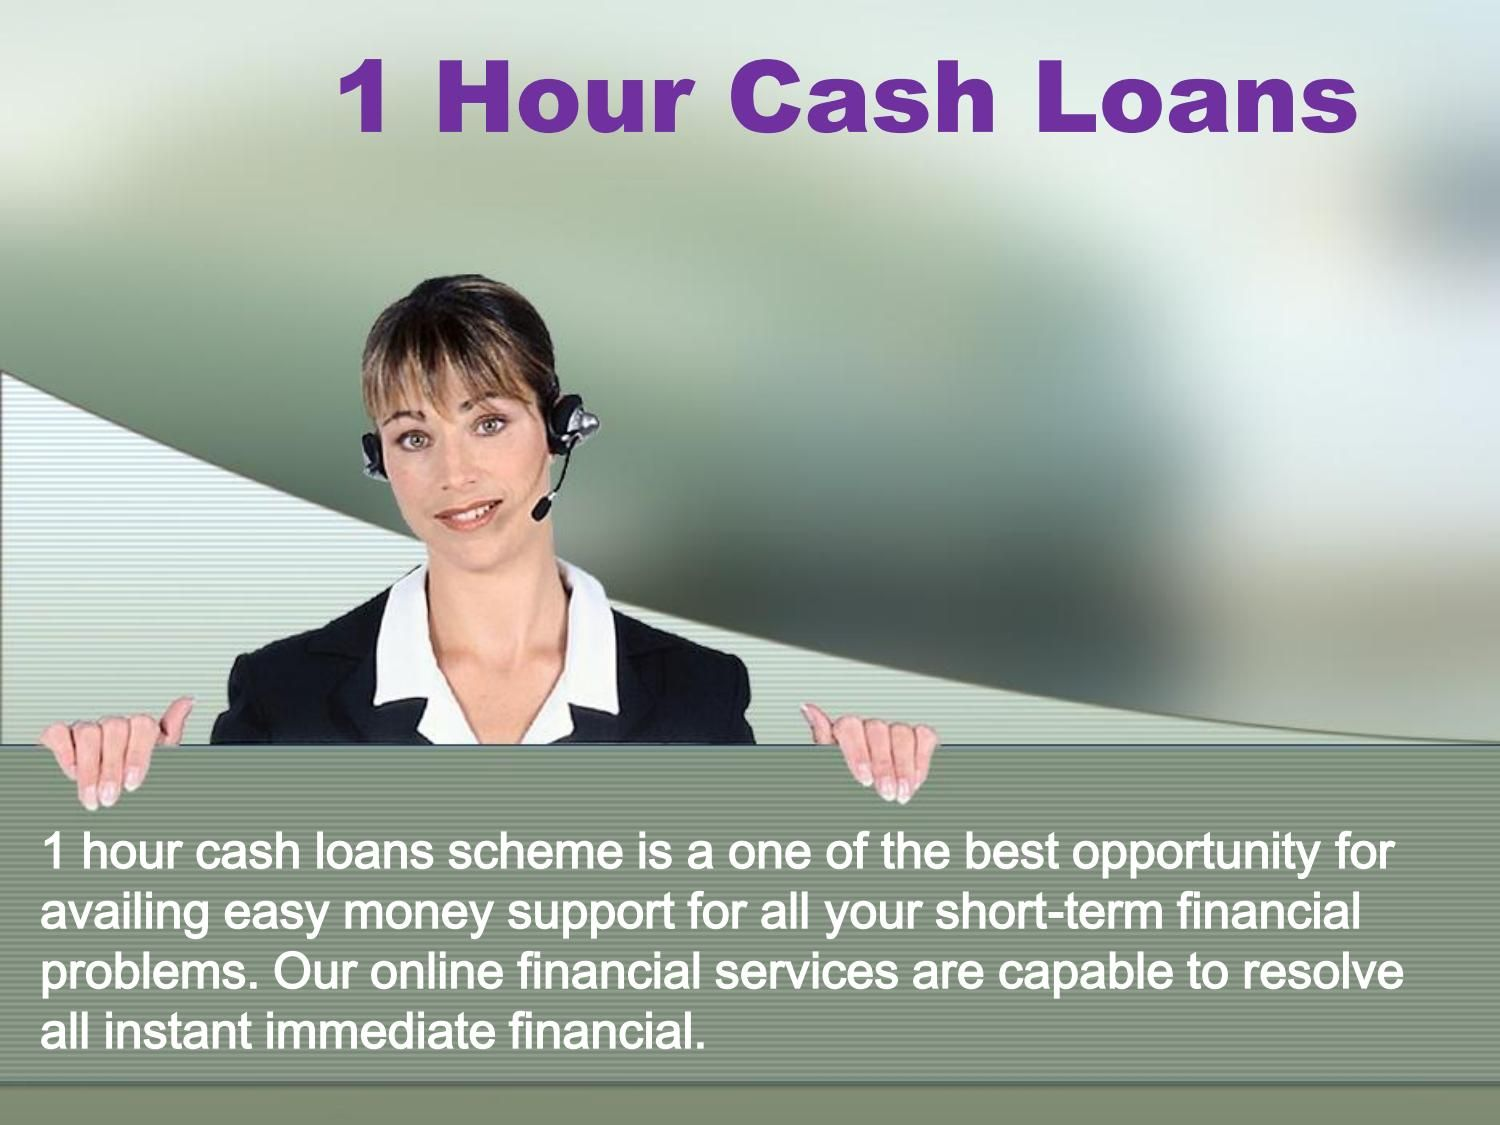 1 Hour Cash Loans Are A Best Way To Grab Funds From External Sources Cash Loans Customer Service Loan